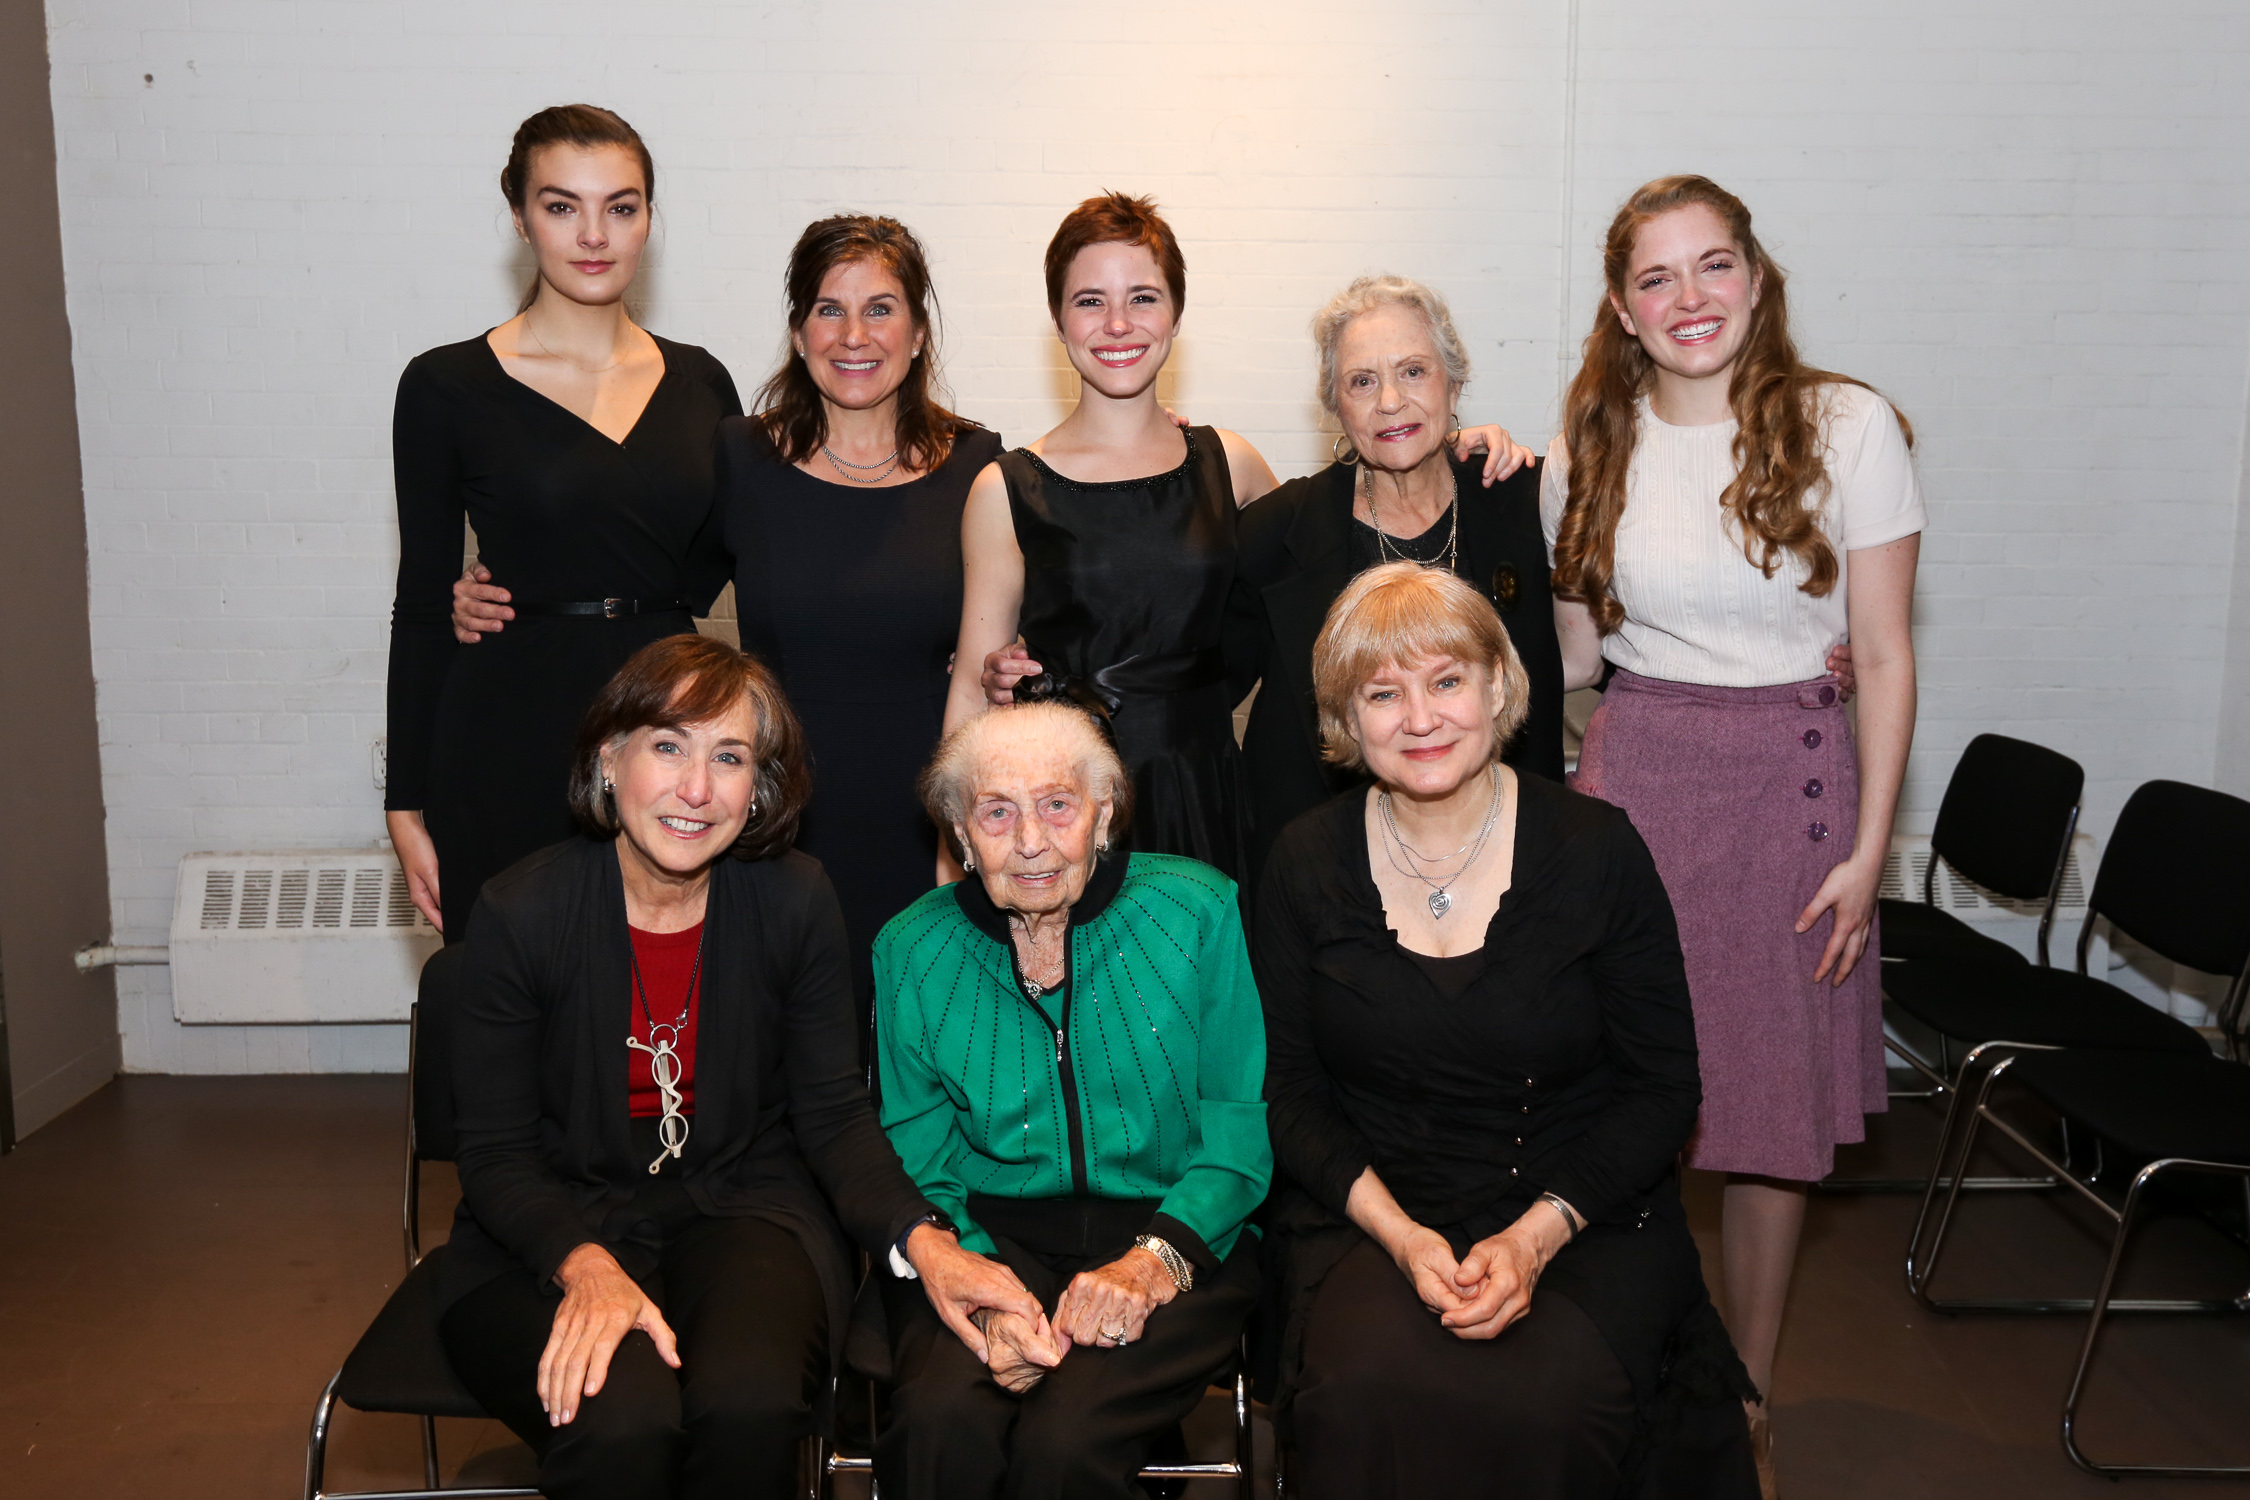 """Pictured above are members of the cast (Britian, second row, far right) along with the playwright (Arlene Hutton, first row, far right) and the actual Sala Garncarz Kirschner (first row, middle) with her daughter, Ann Kirschner (first row, far left) the writer of """"Sala's Gift"""", the book that inspired the play."""